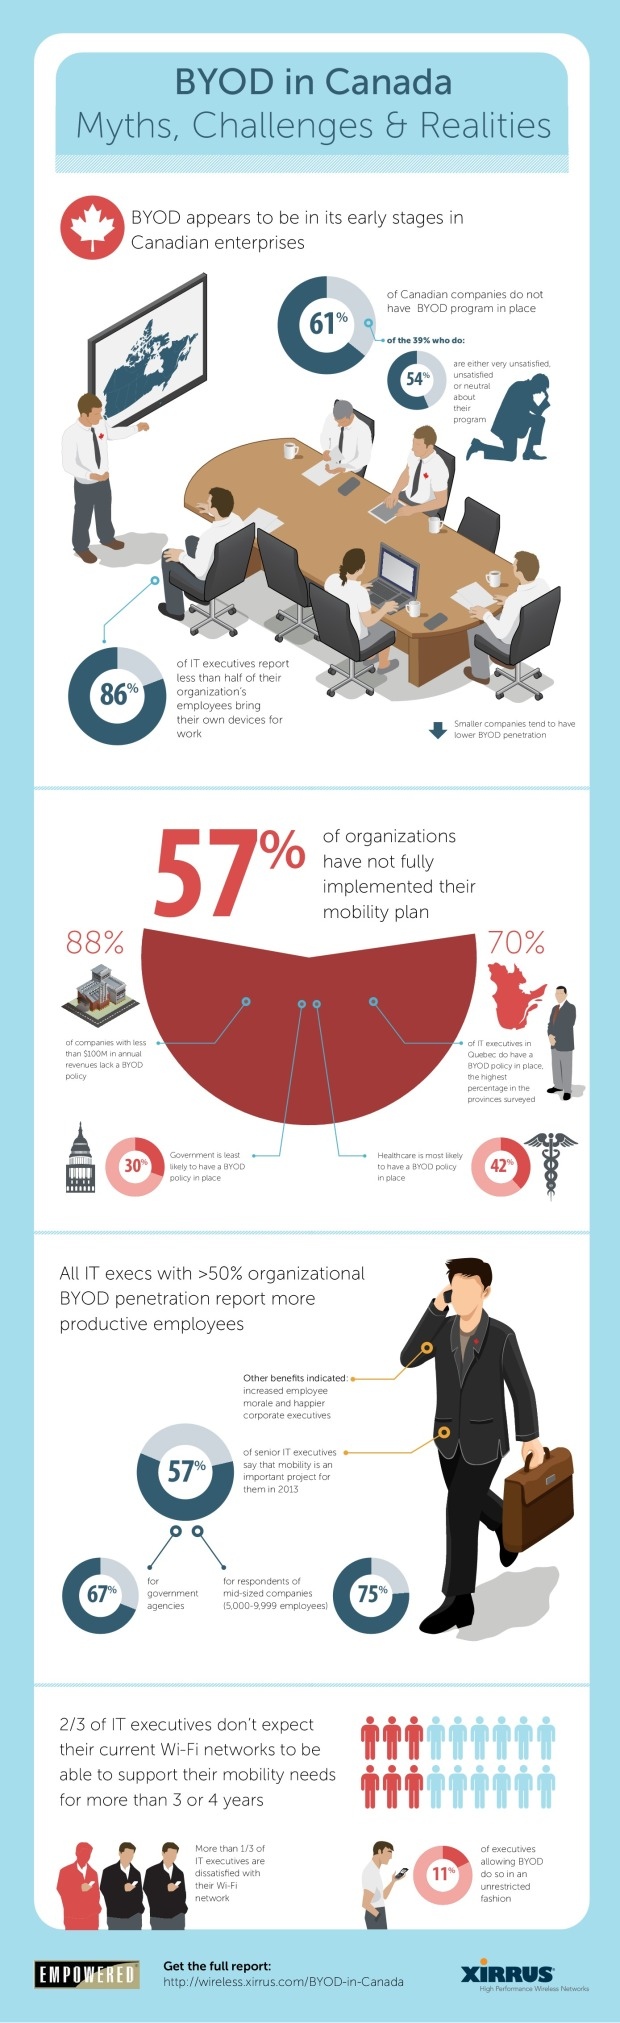 byod-in-canada-myths-challenges--realities_52586105b7716